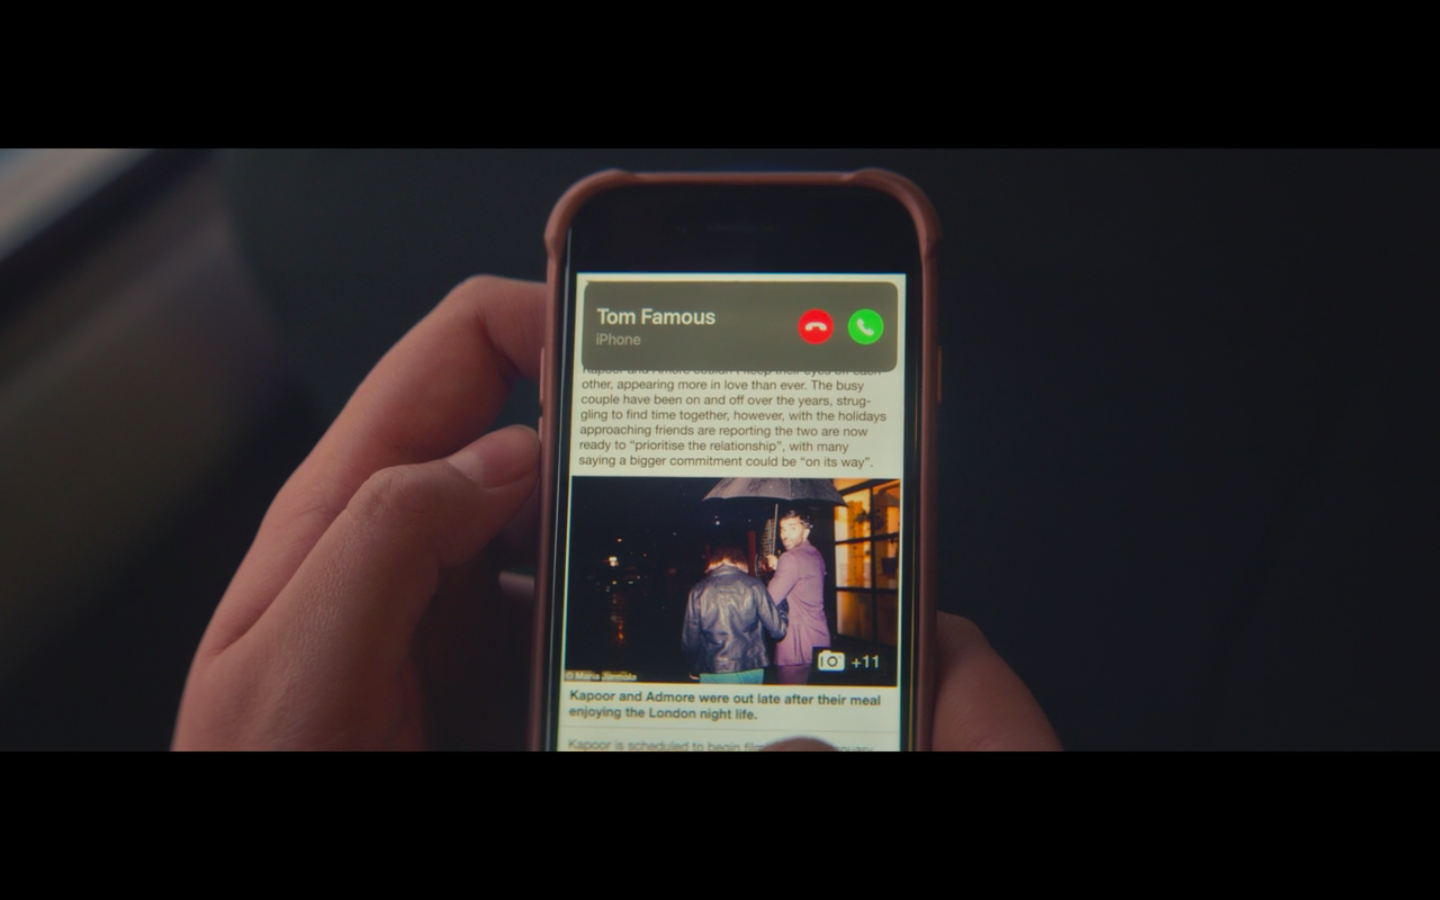 Jessie's phone with an article about Tom and his ex-girlfriend and then a notification that Tom is calling with the name Tom Famous.